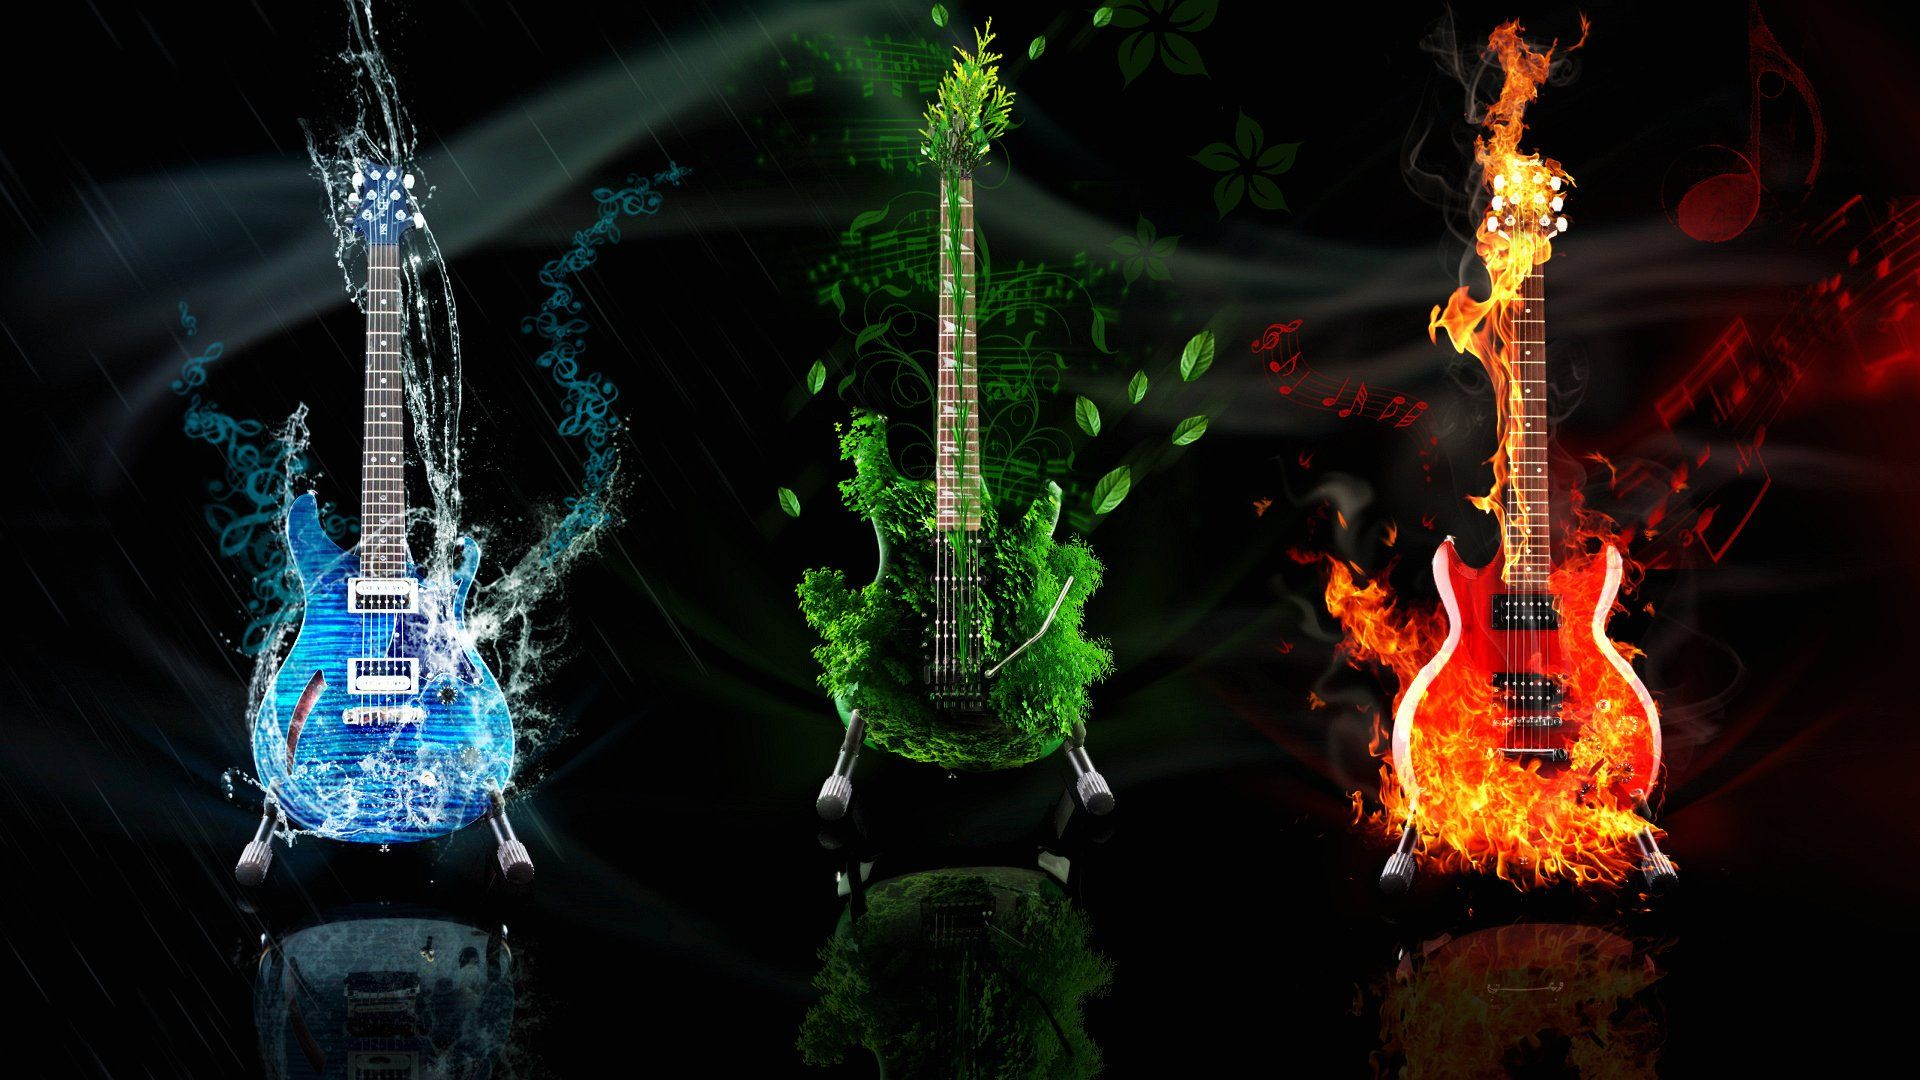 Bass Guitar Wallpapers And Backgrounds 1920 X 1080 1080 Theme